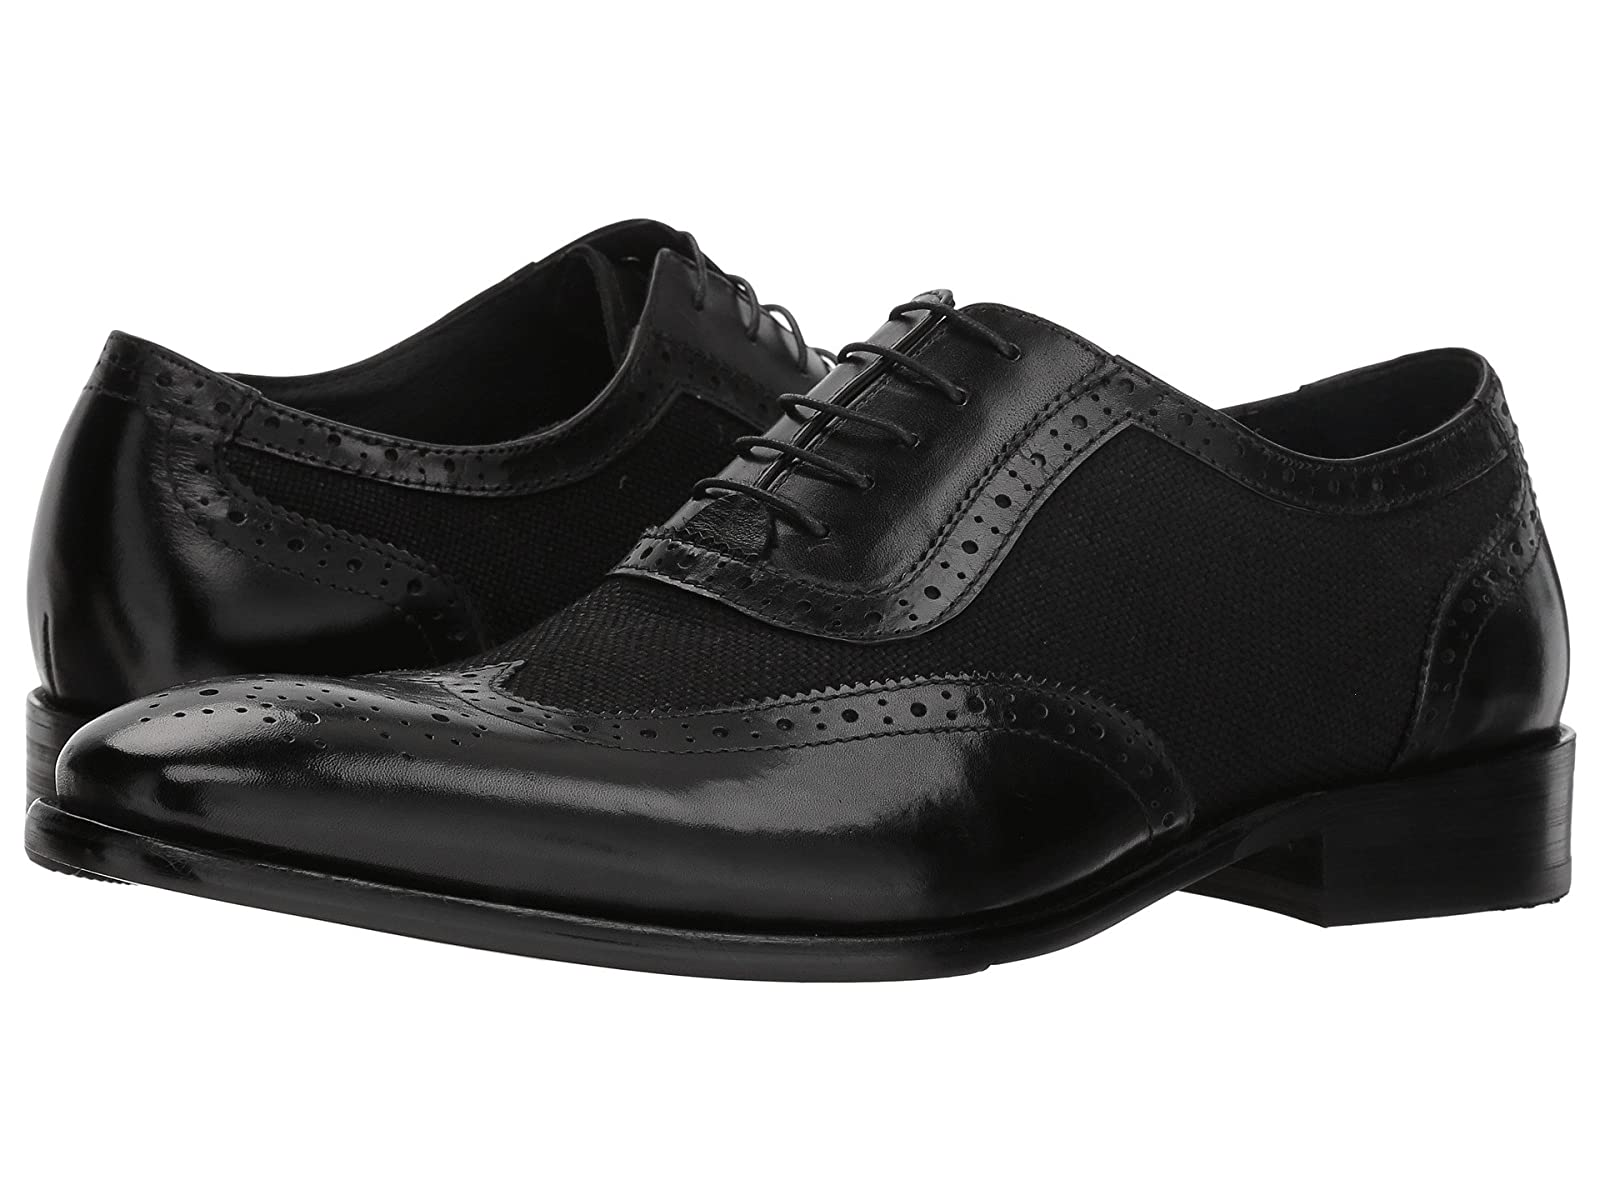 Carrucci MangioneAtmospheric grades have affordable shoes